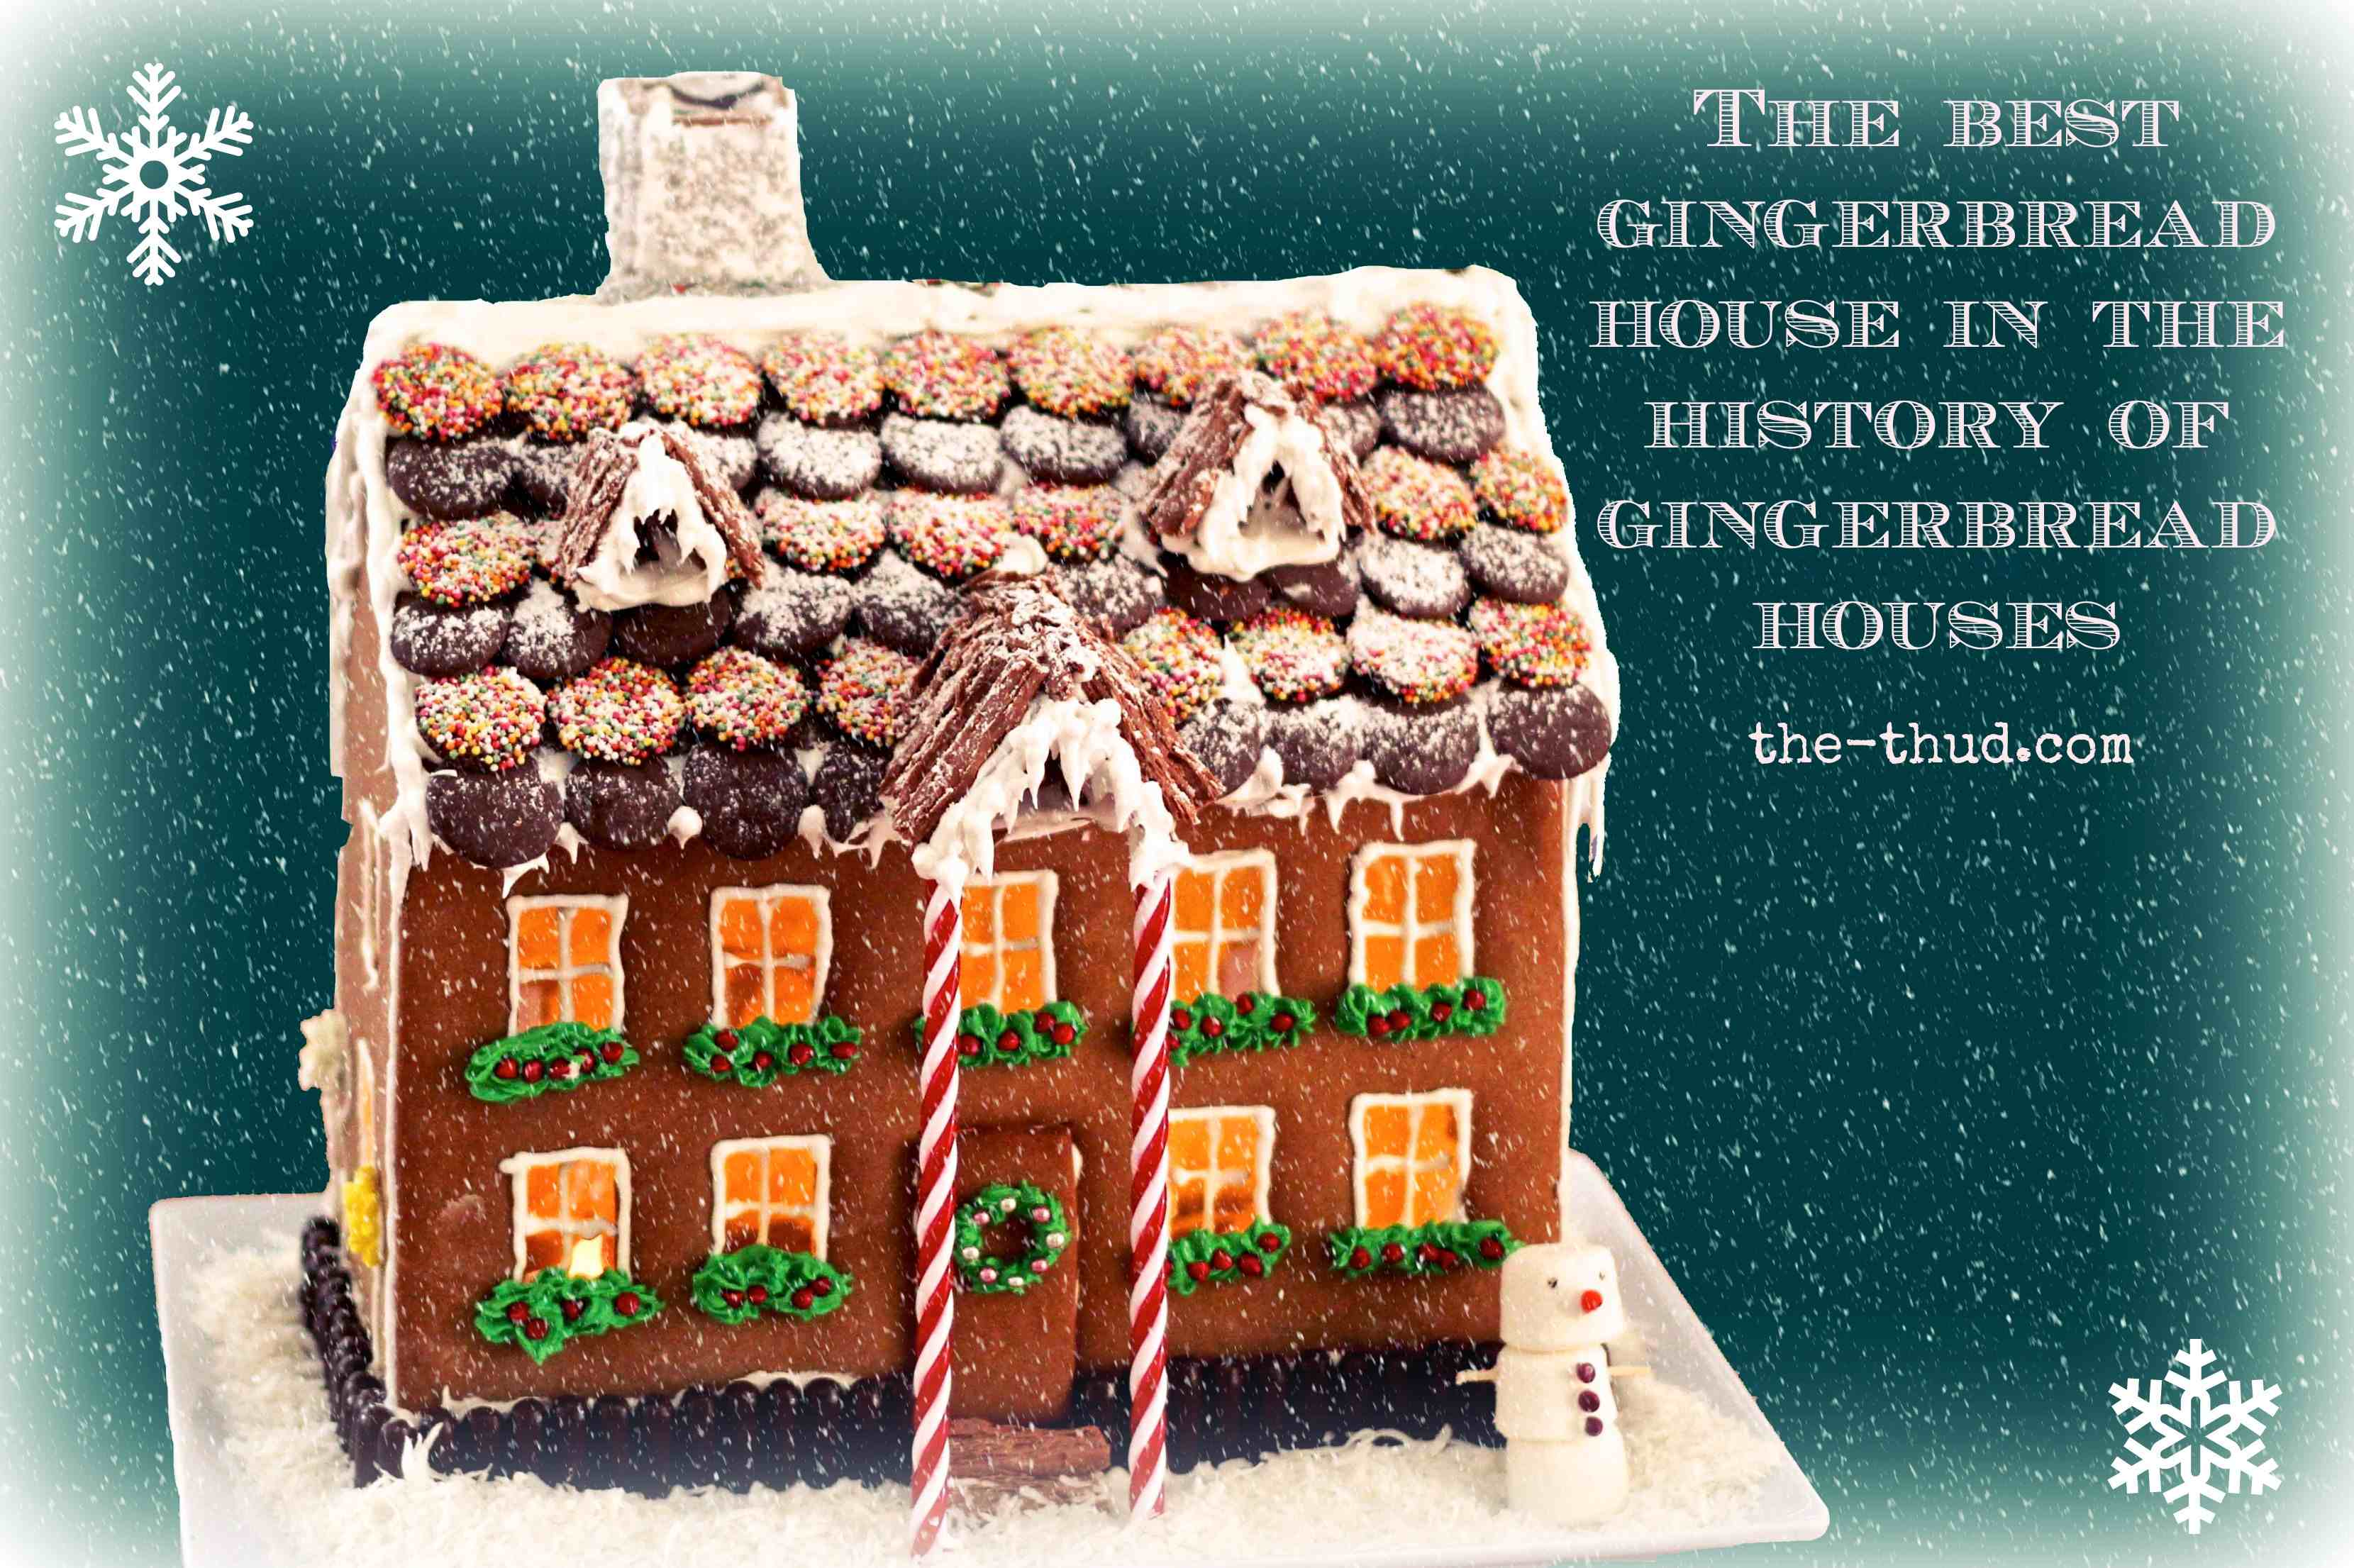 photo relating to Gingerbread House Templates Printable Free titled The Ideal Gingerbread Household in just the historical past of Gingerbread